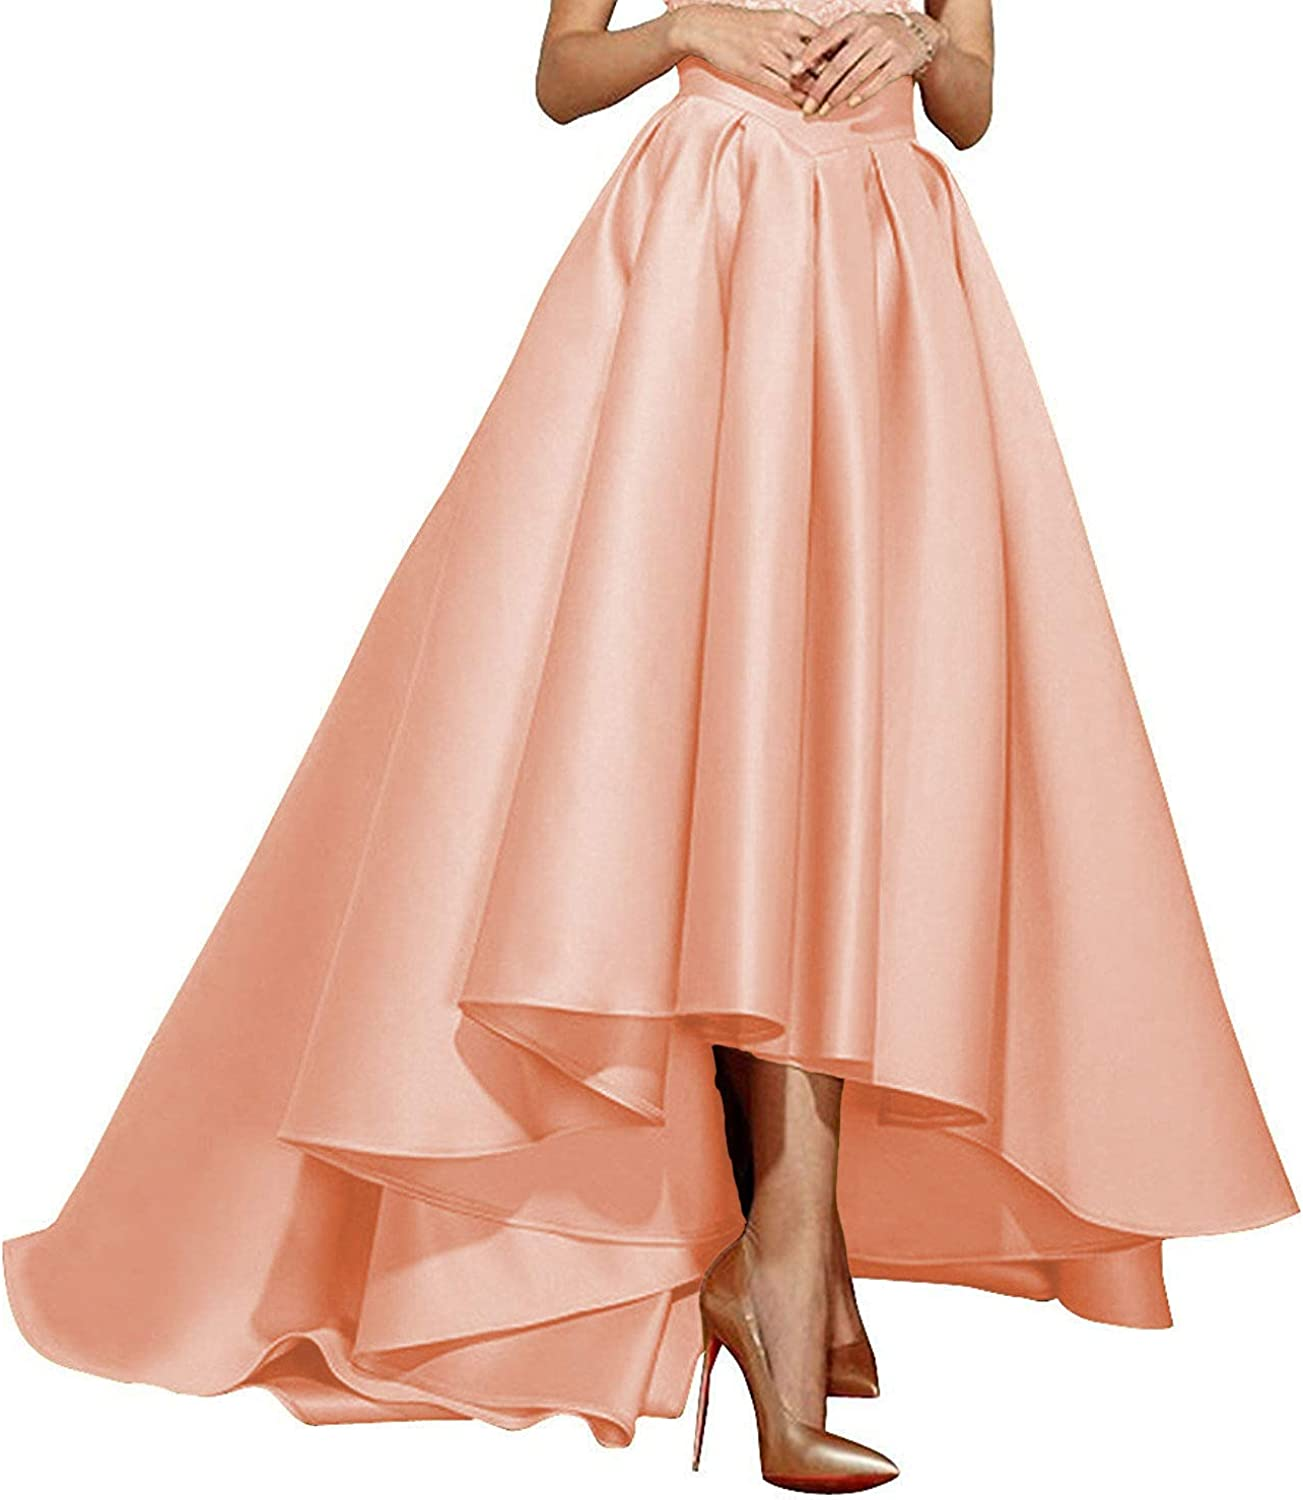 High Low Skirts Pleated Satin Maxi A Line Formal Prom Party Skirt Wedding Evening Dress for Women